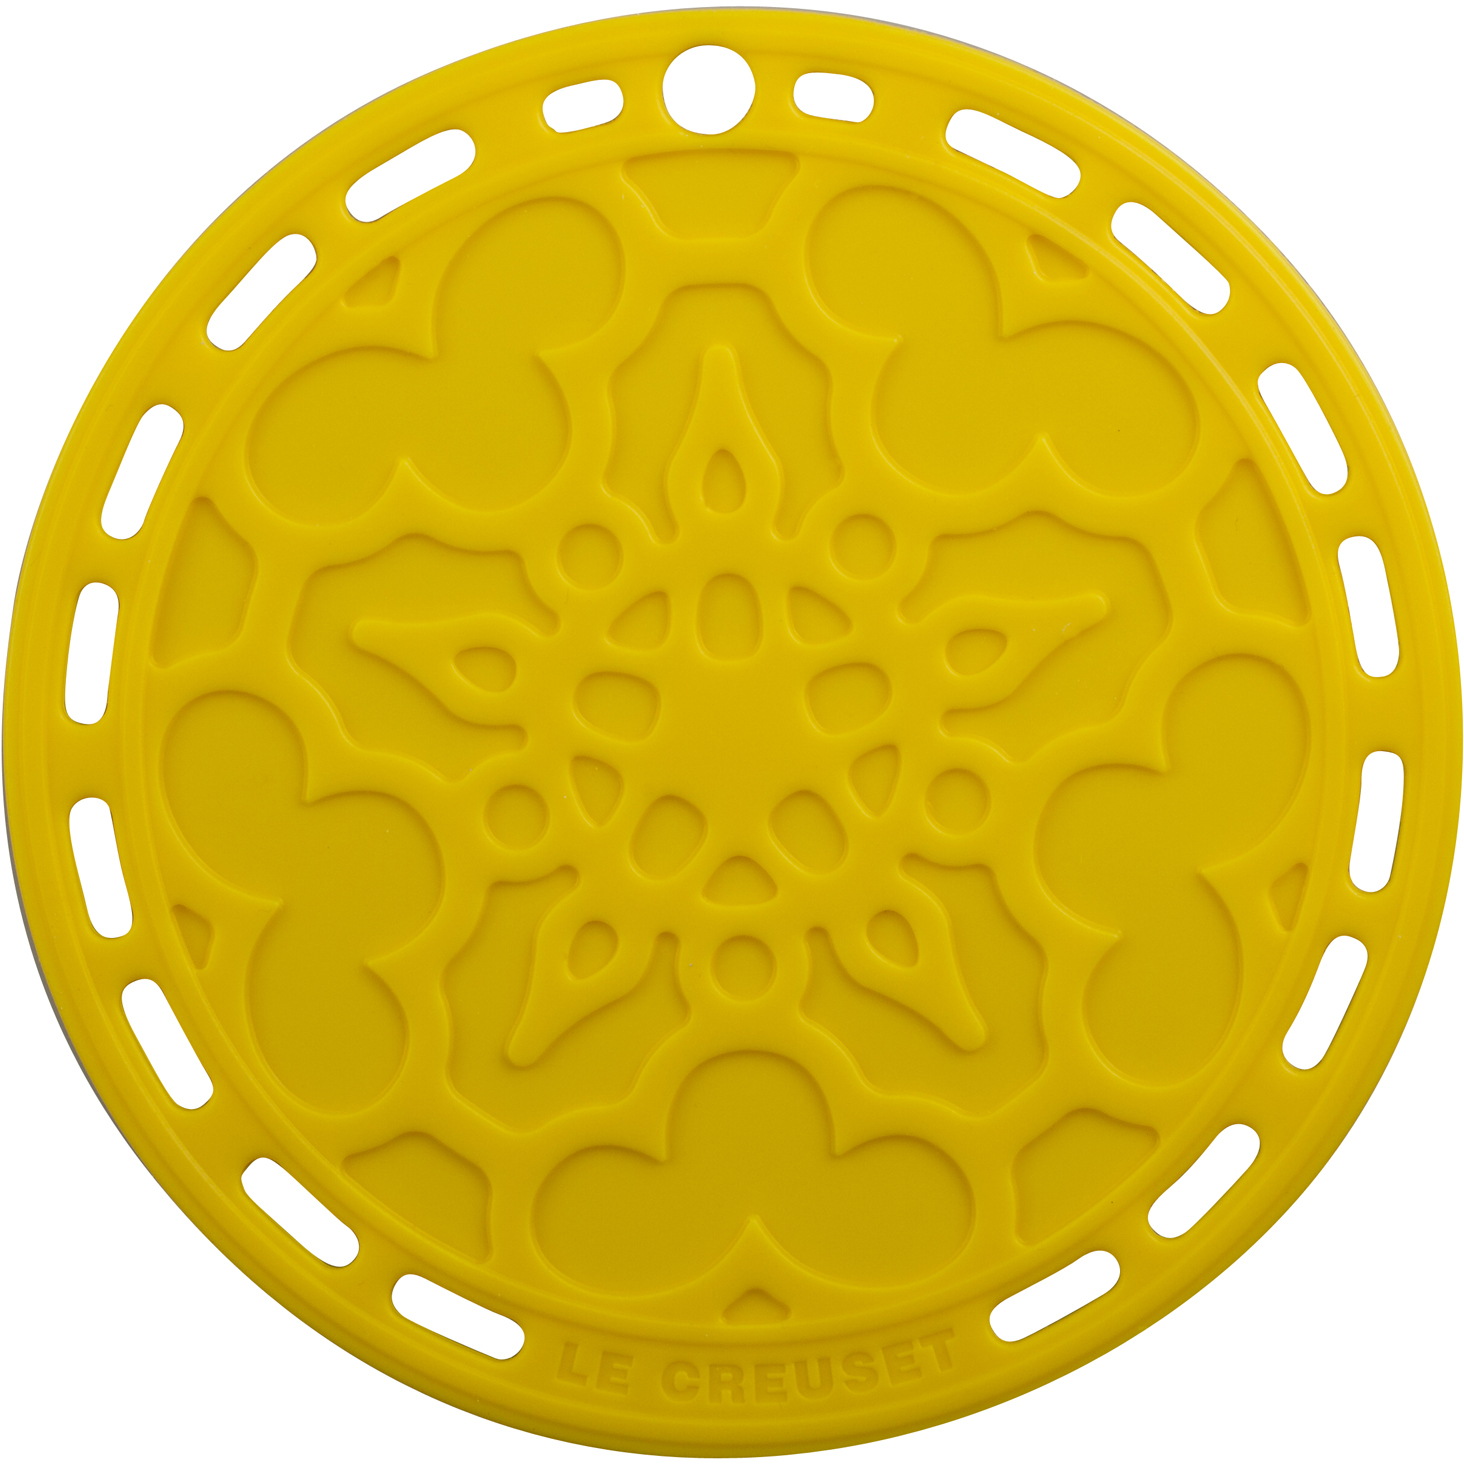 Le Creuset Soleil Yellow Silicone French Trivet, 8 Inch